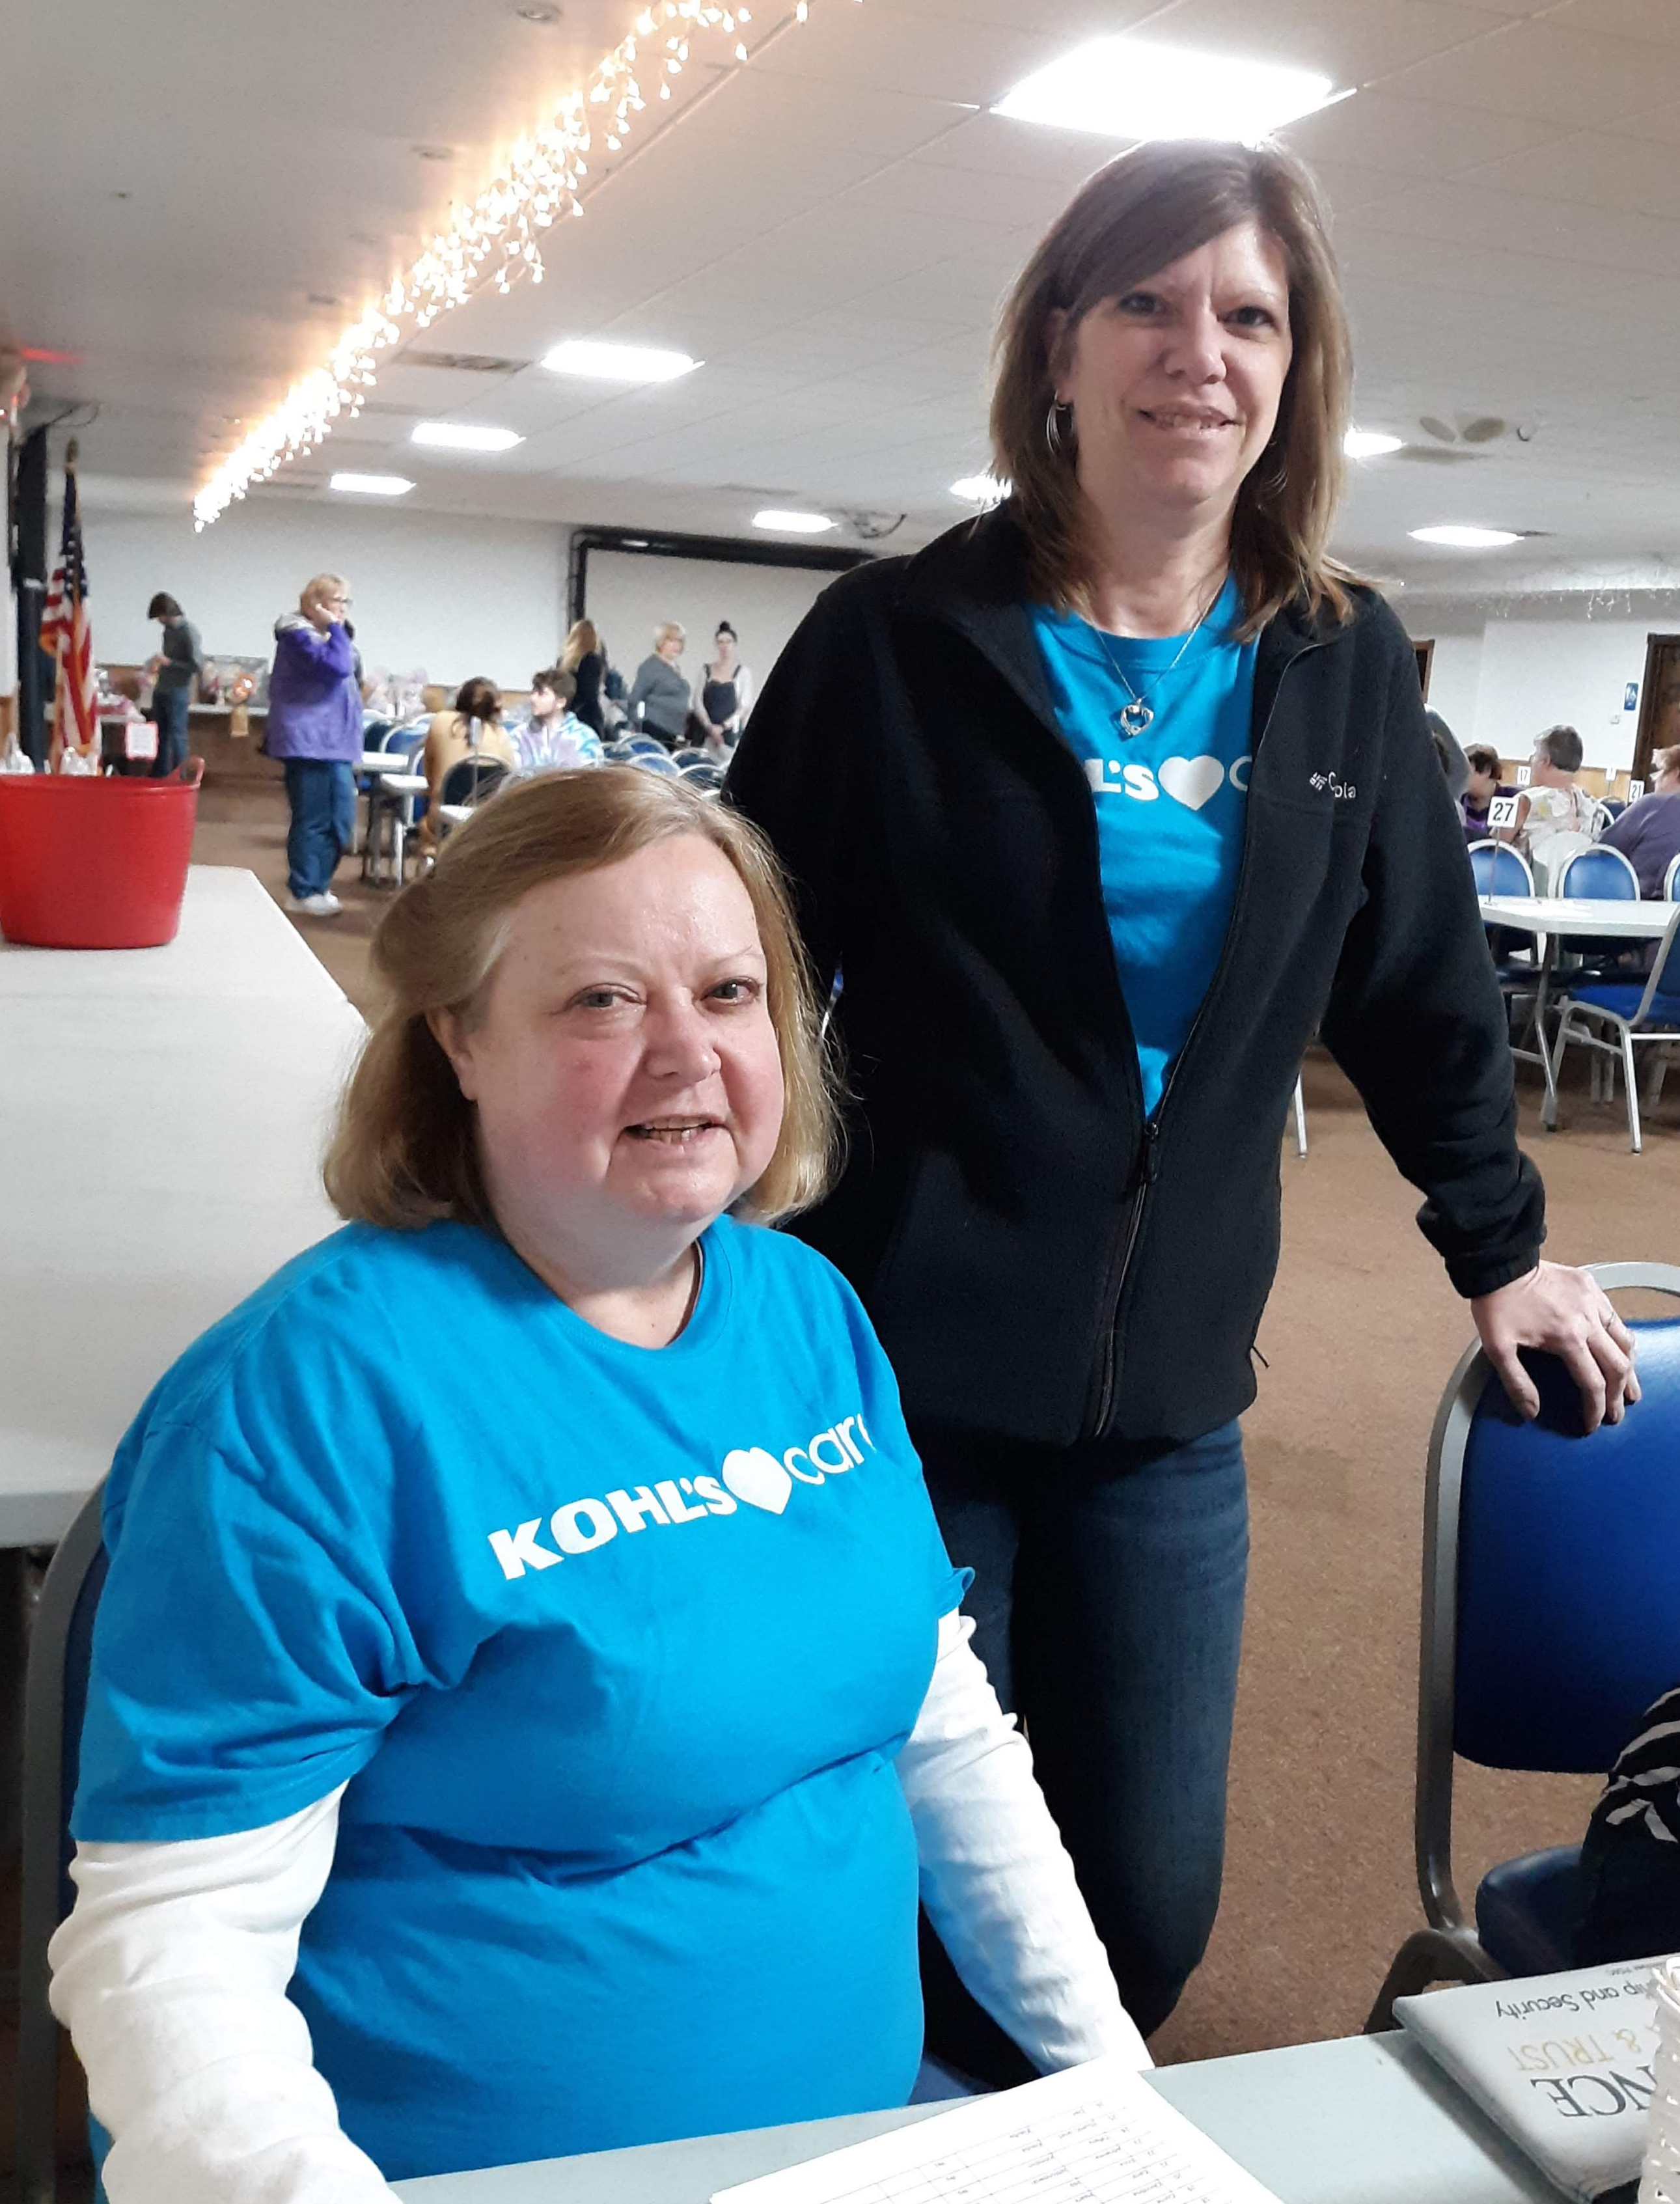 Kohl's Cares (Tinley Park)